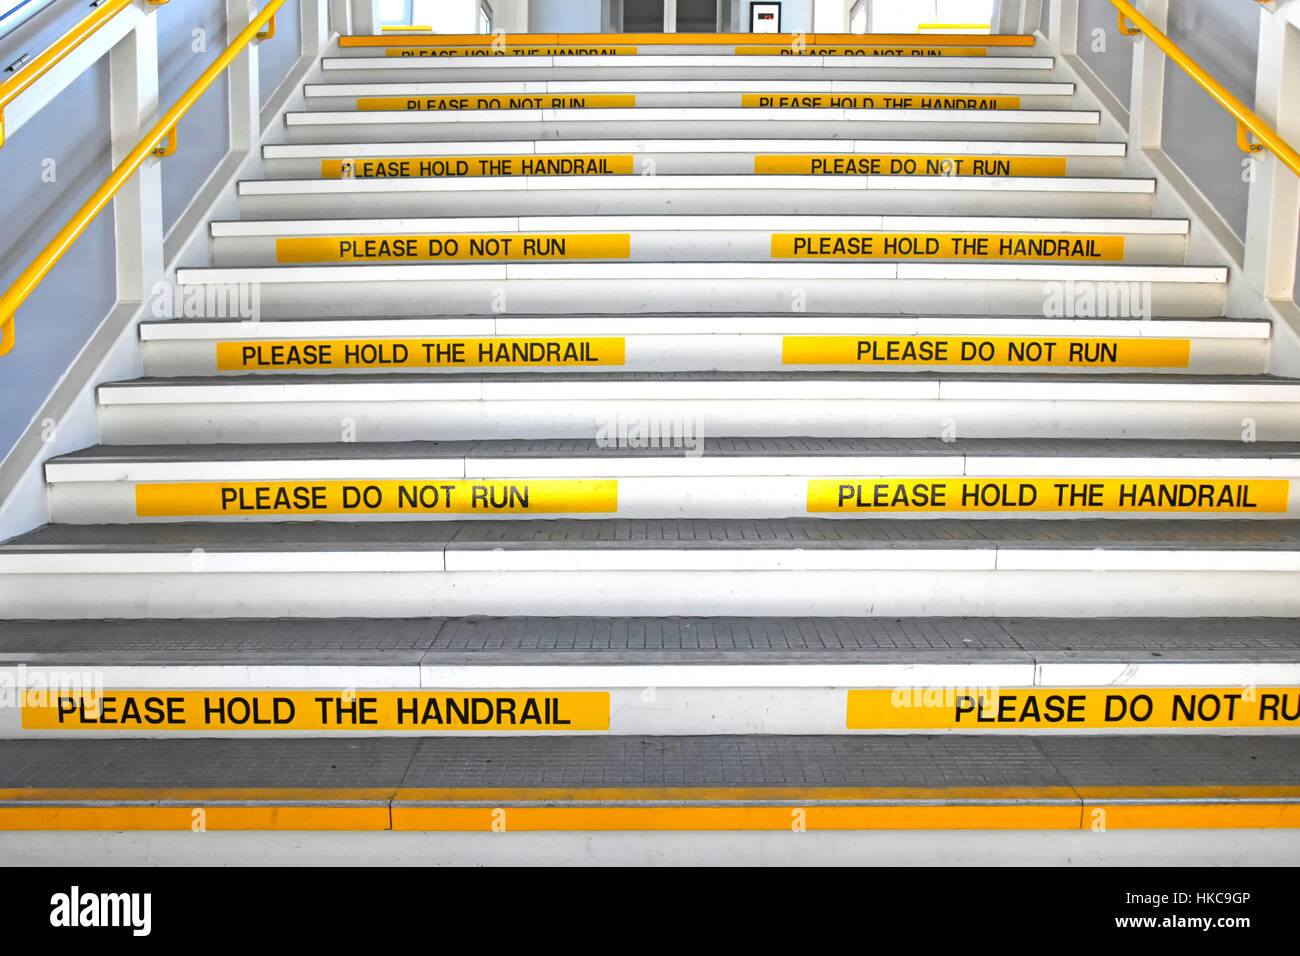 Exceptionnel Health U0026 Safety Yellow Repeat Visible Warning Signs On Risers Of Wide  Public Staircase Railway Station Platform Bans Running But Hold Handrail UK